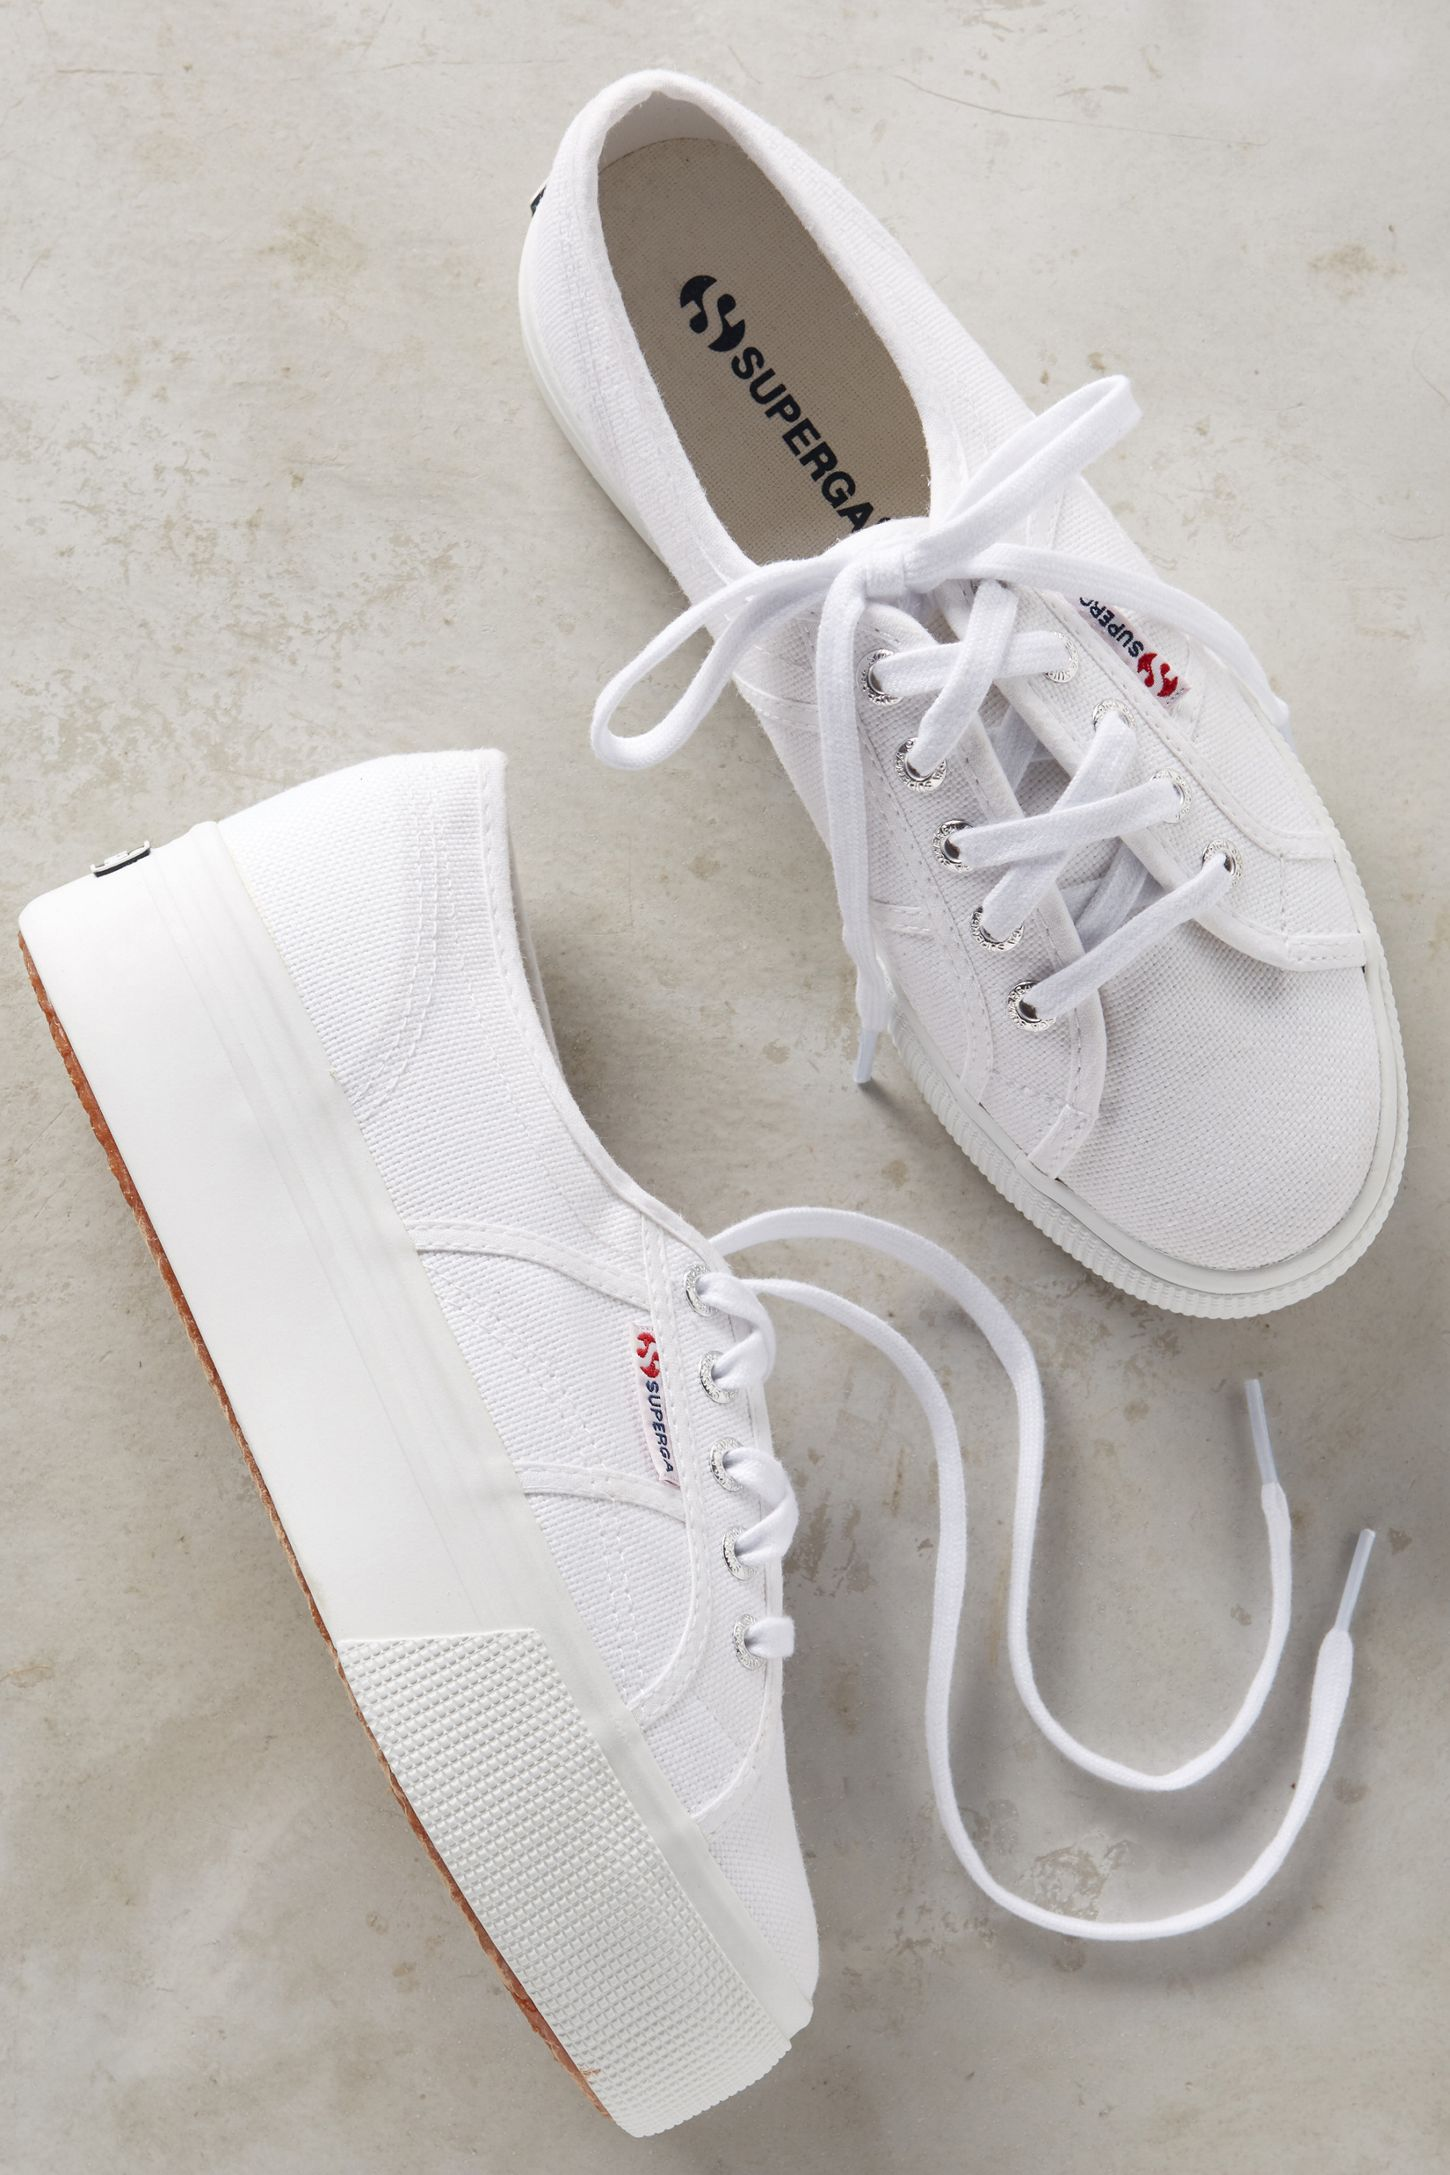 23e011267d5e Superga Platform Sneakers. Tap image to zoom. Hover your mouse over an  image to zoom. Double Tap to Zoom